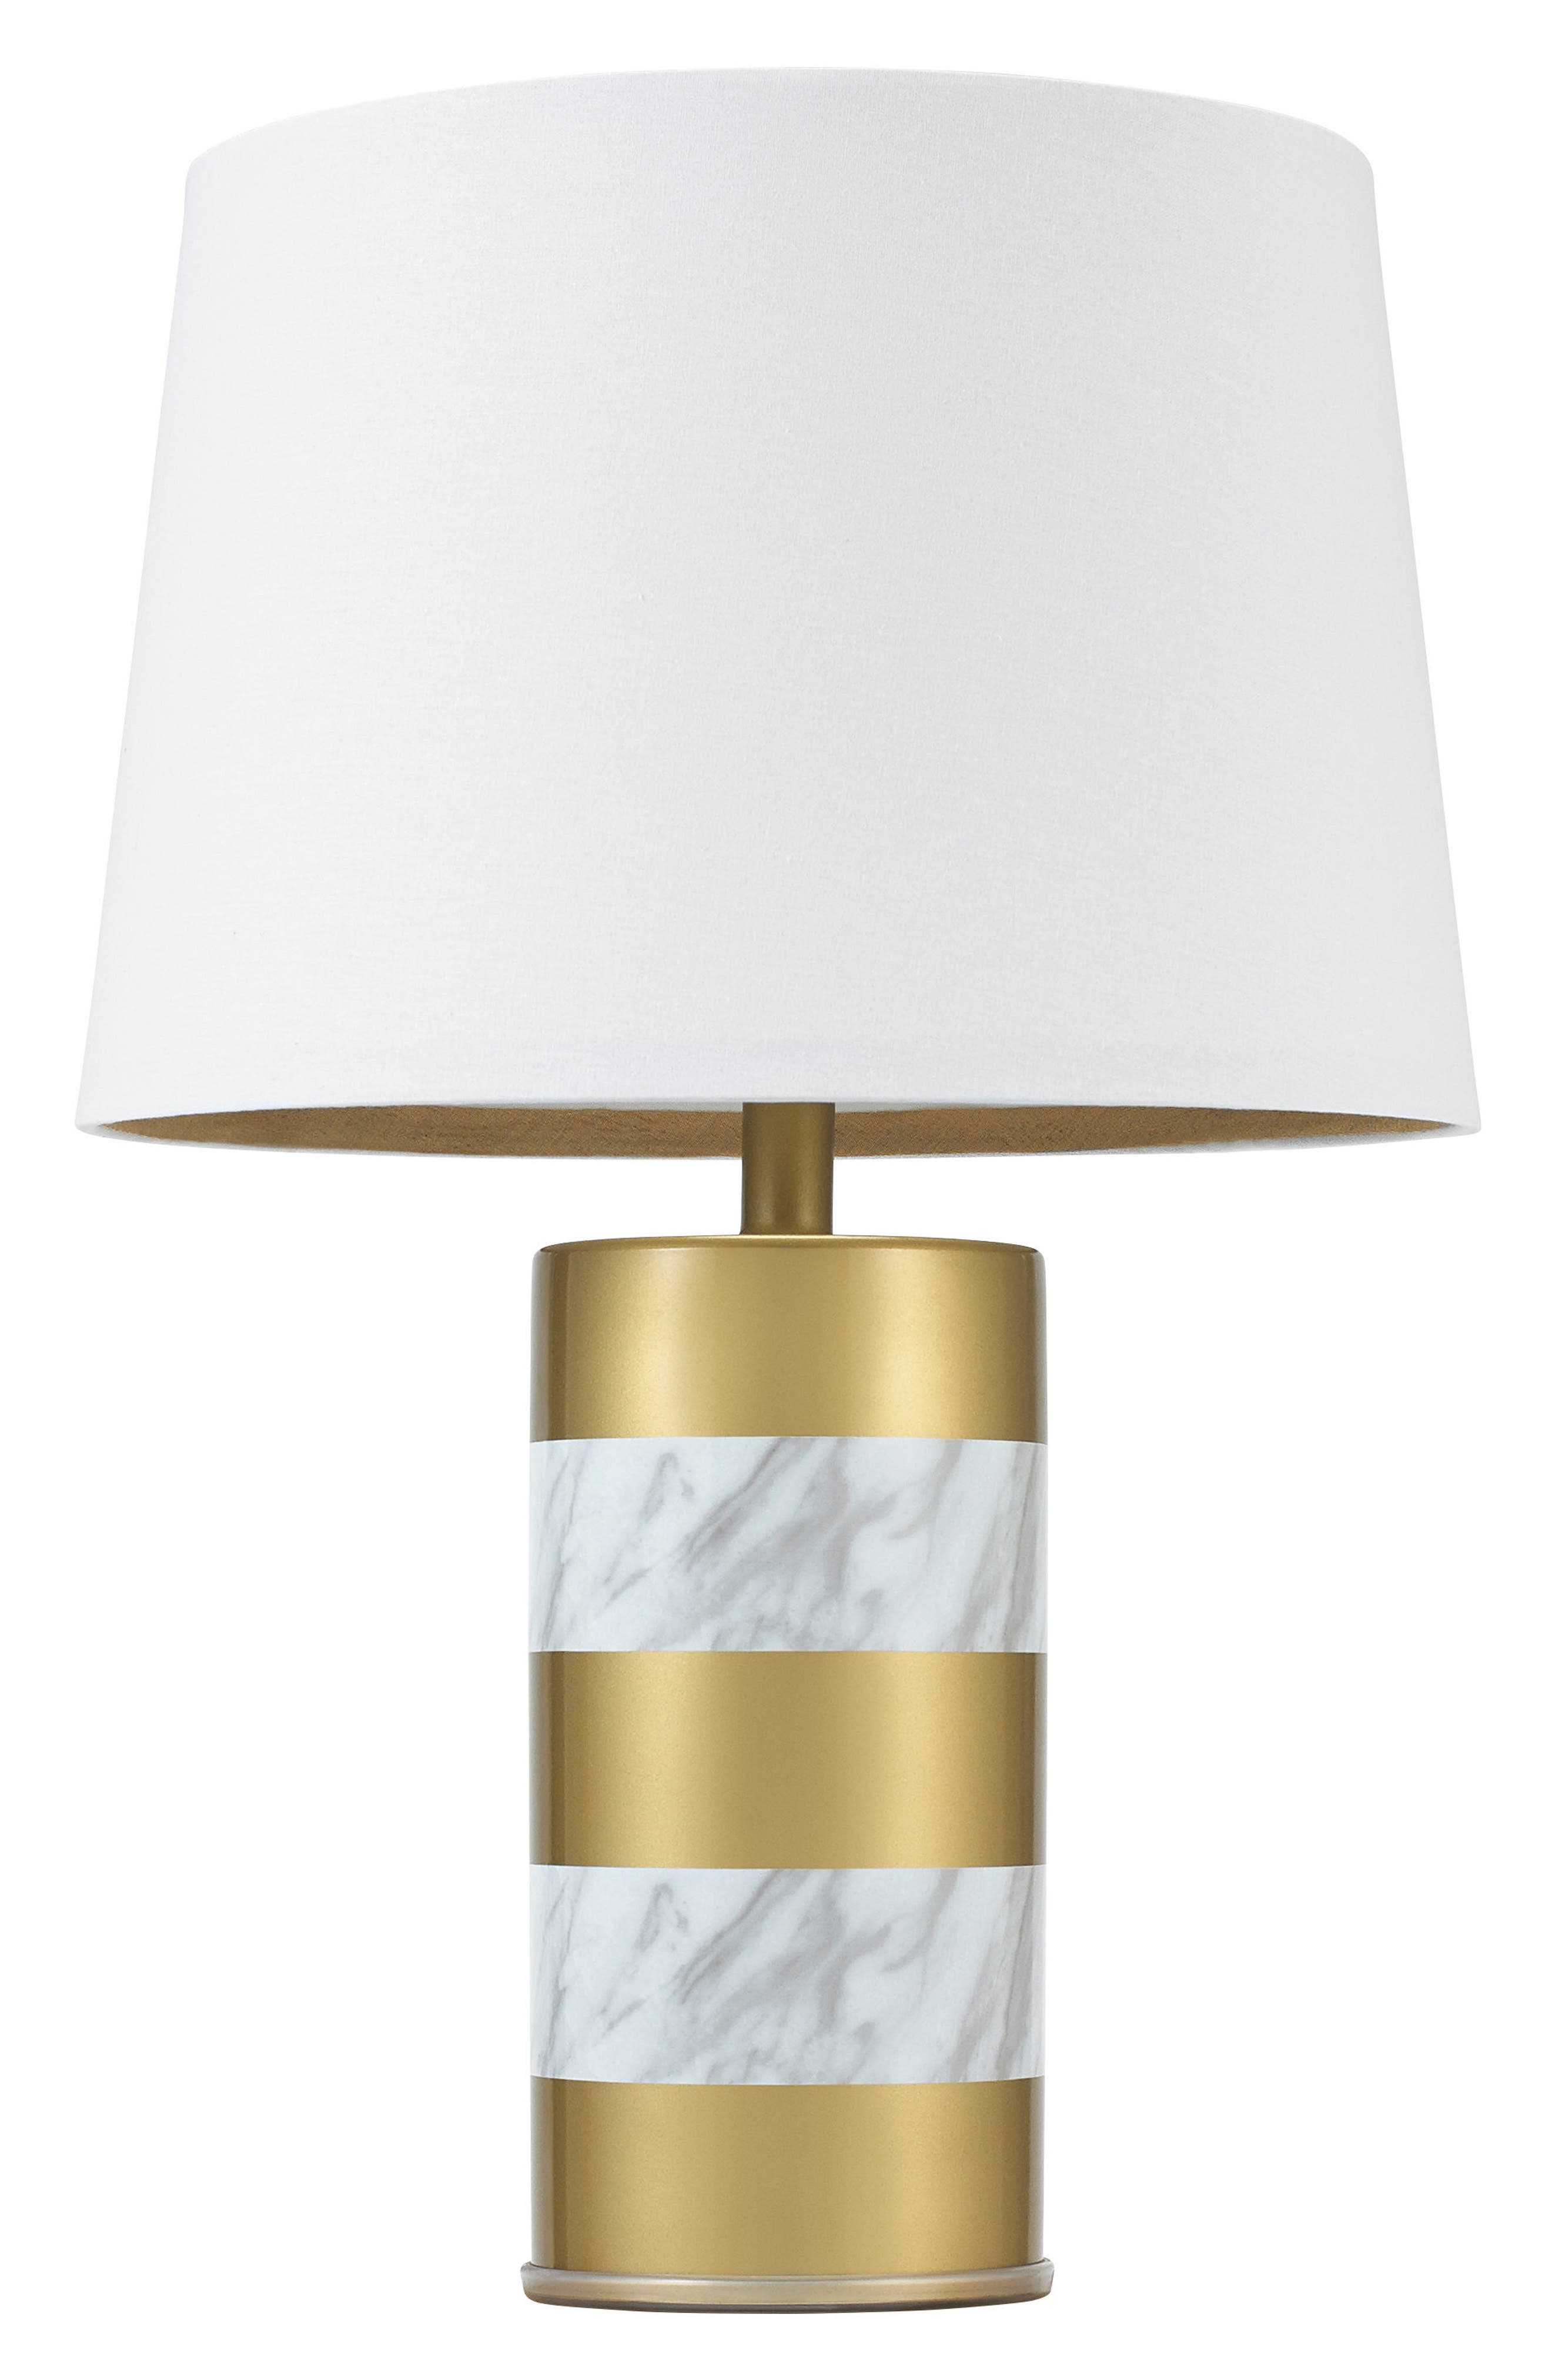 Goldtone & Marble Finish Table Lamp,                             Main thumbnail 1, color,                             710